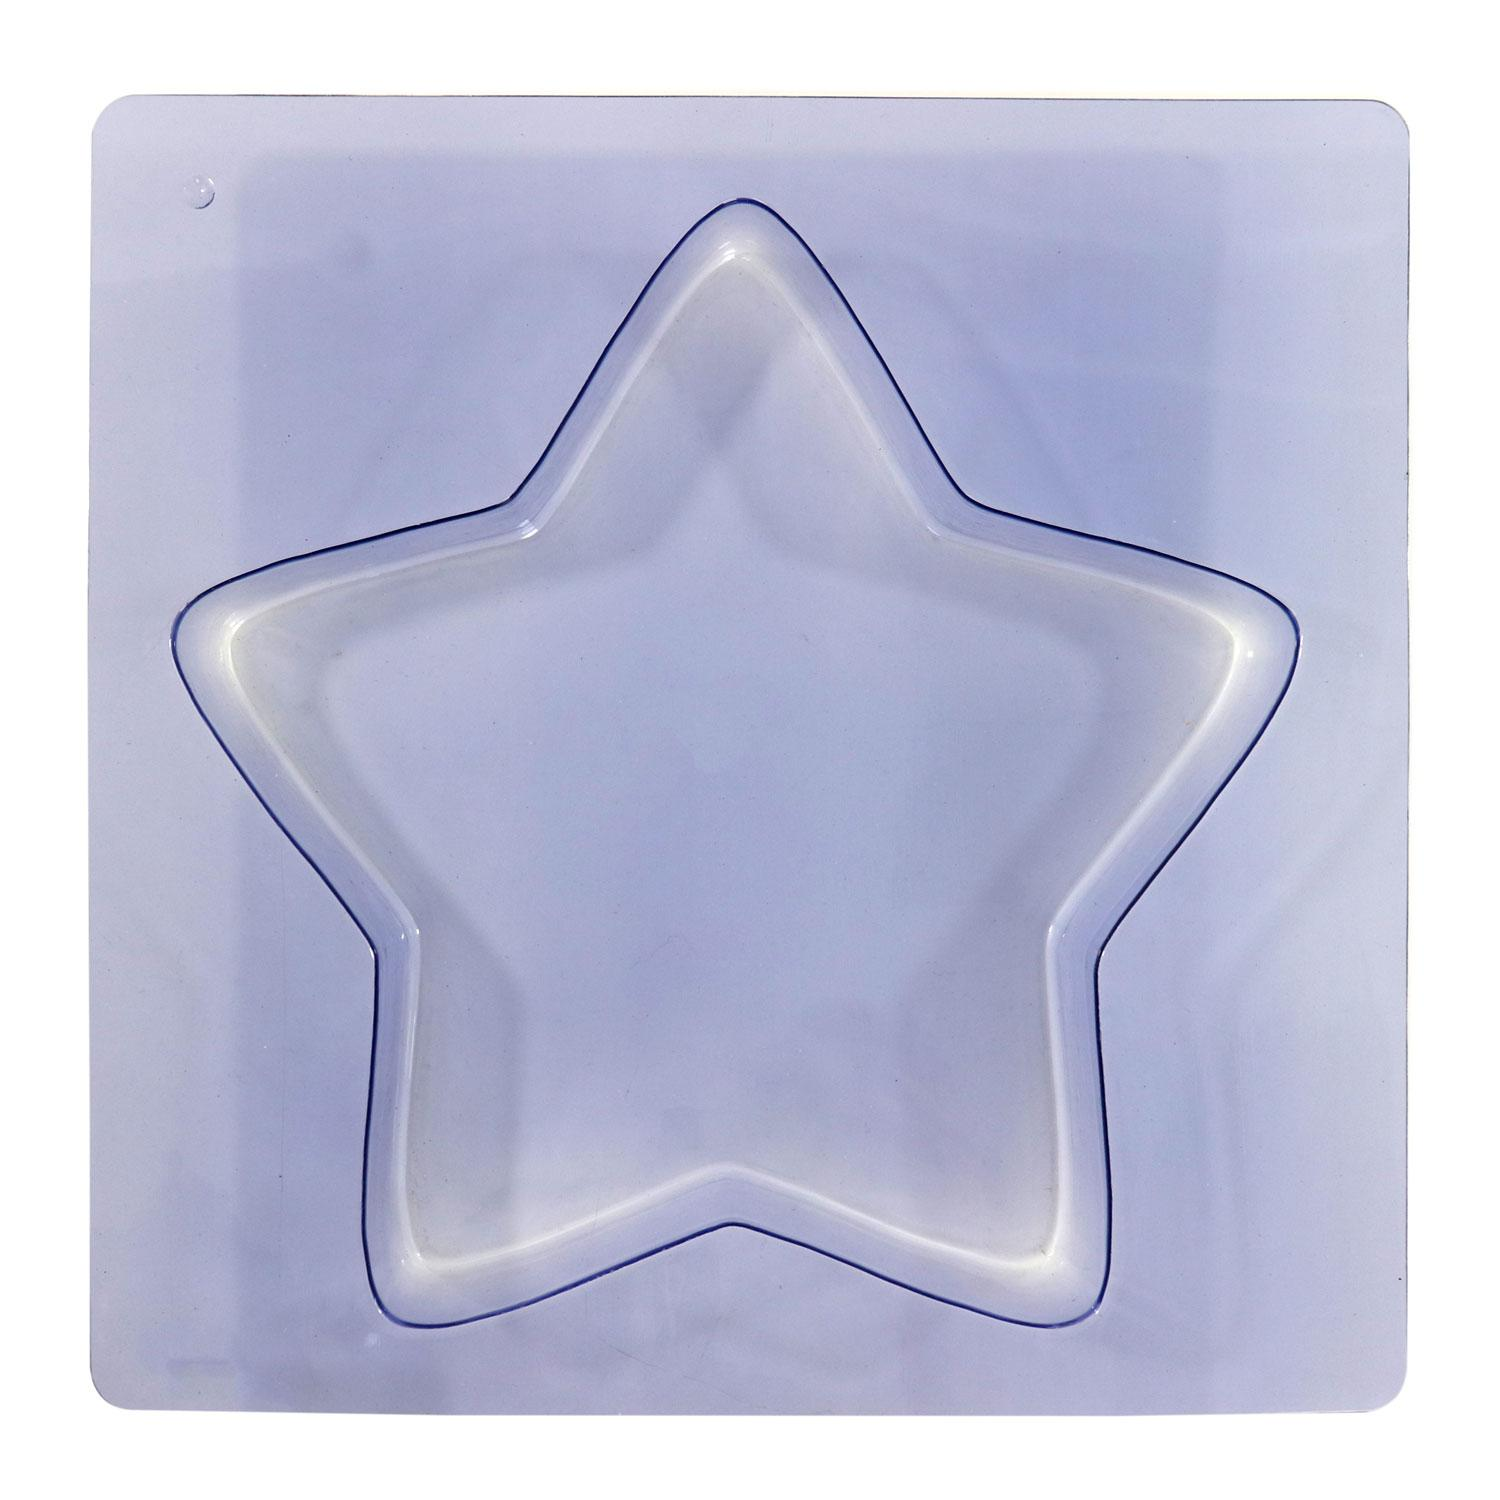 10 Star Stepping Stone Mold